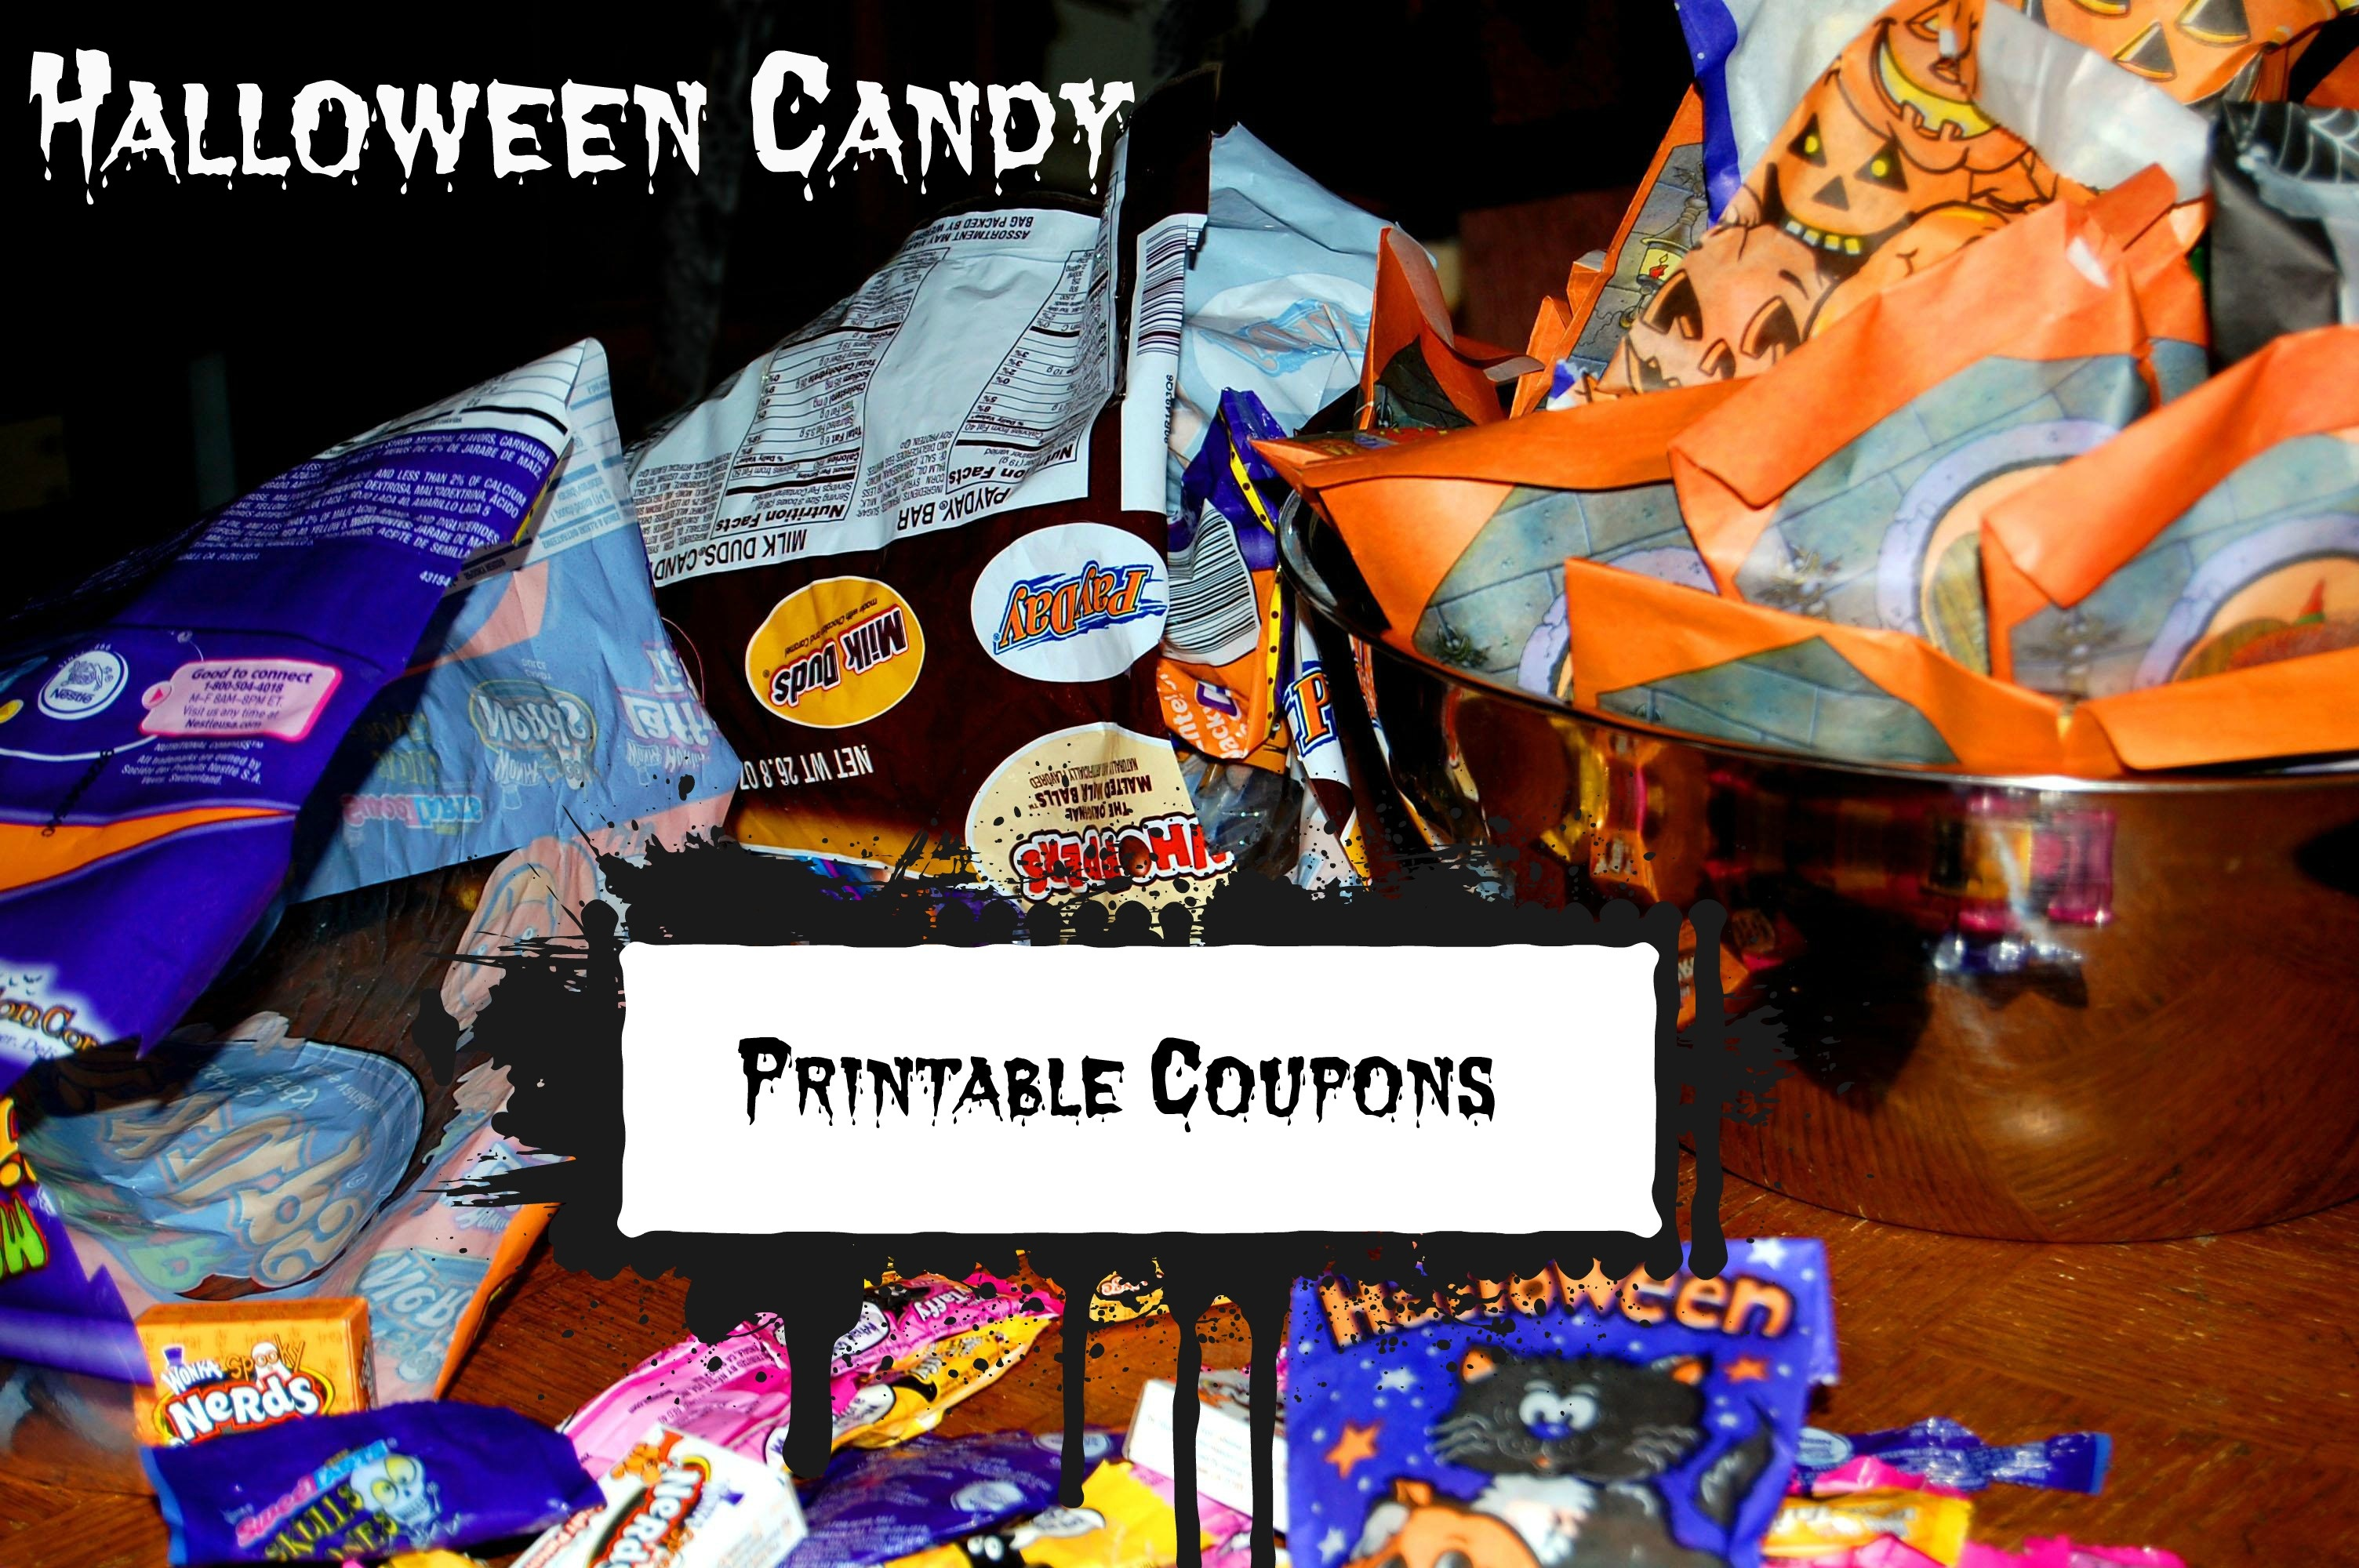 Printable Halloween Candy Coupons Round-Up - Thrifty Jinxy - Free Printable Halloween Candy Coupons